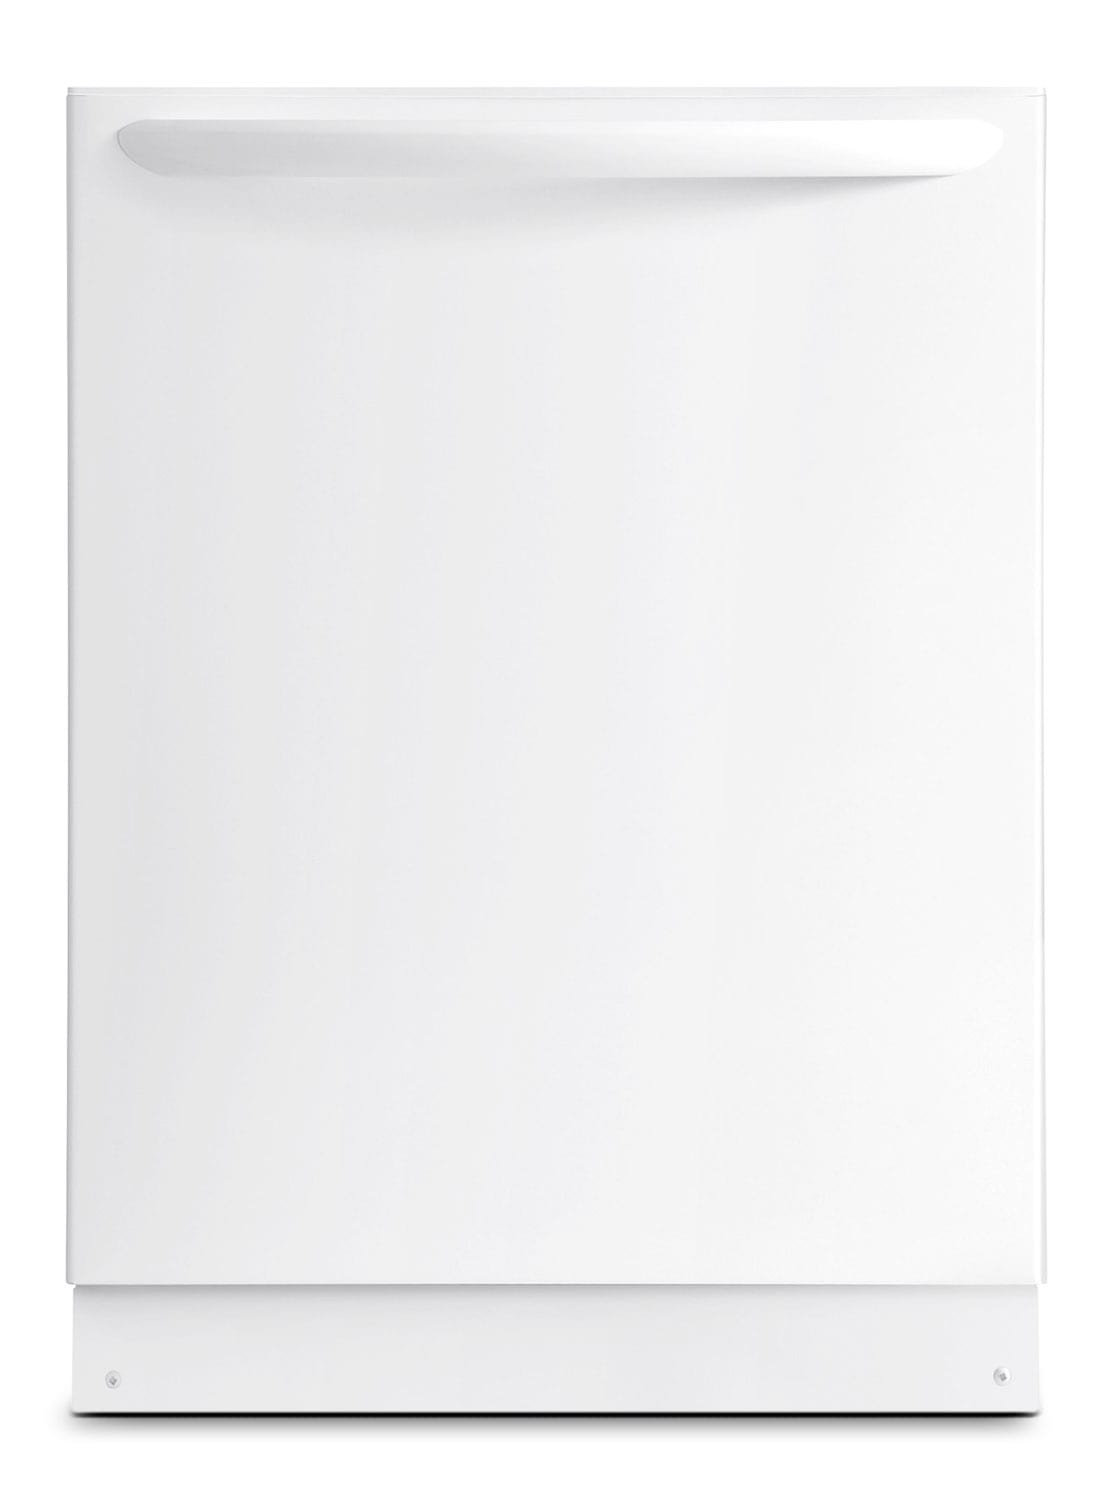 "Frigidaire Gallery White 24"" Dishwasher - FGID2474QW"